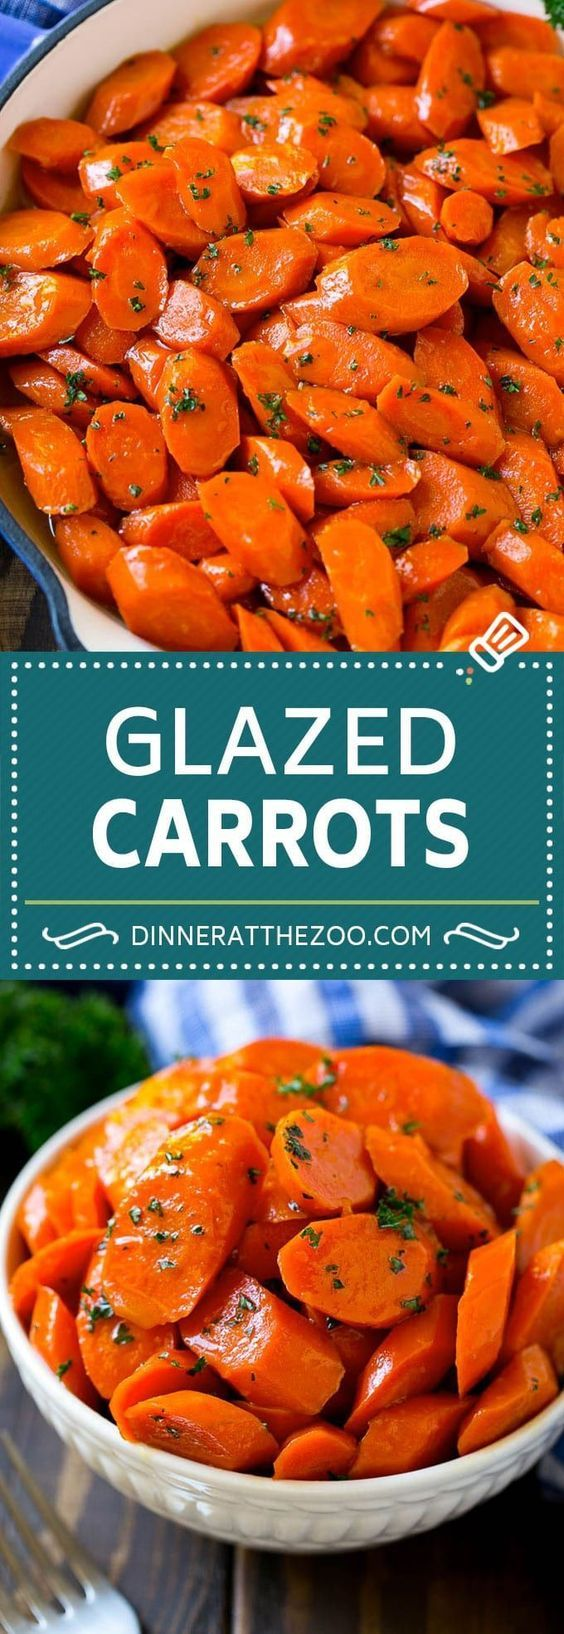 Glazed Carrots Recipe | Brown Sugar Carrots | Carrot Side Dish #carrots #brownsugar #sidedish #glutenfree #thanksgiving #fall #dinner #dinneratthezoo #fallrecipesdinner